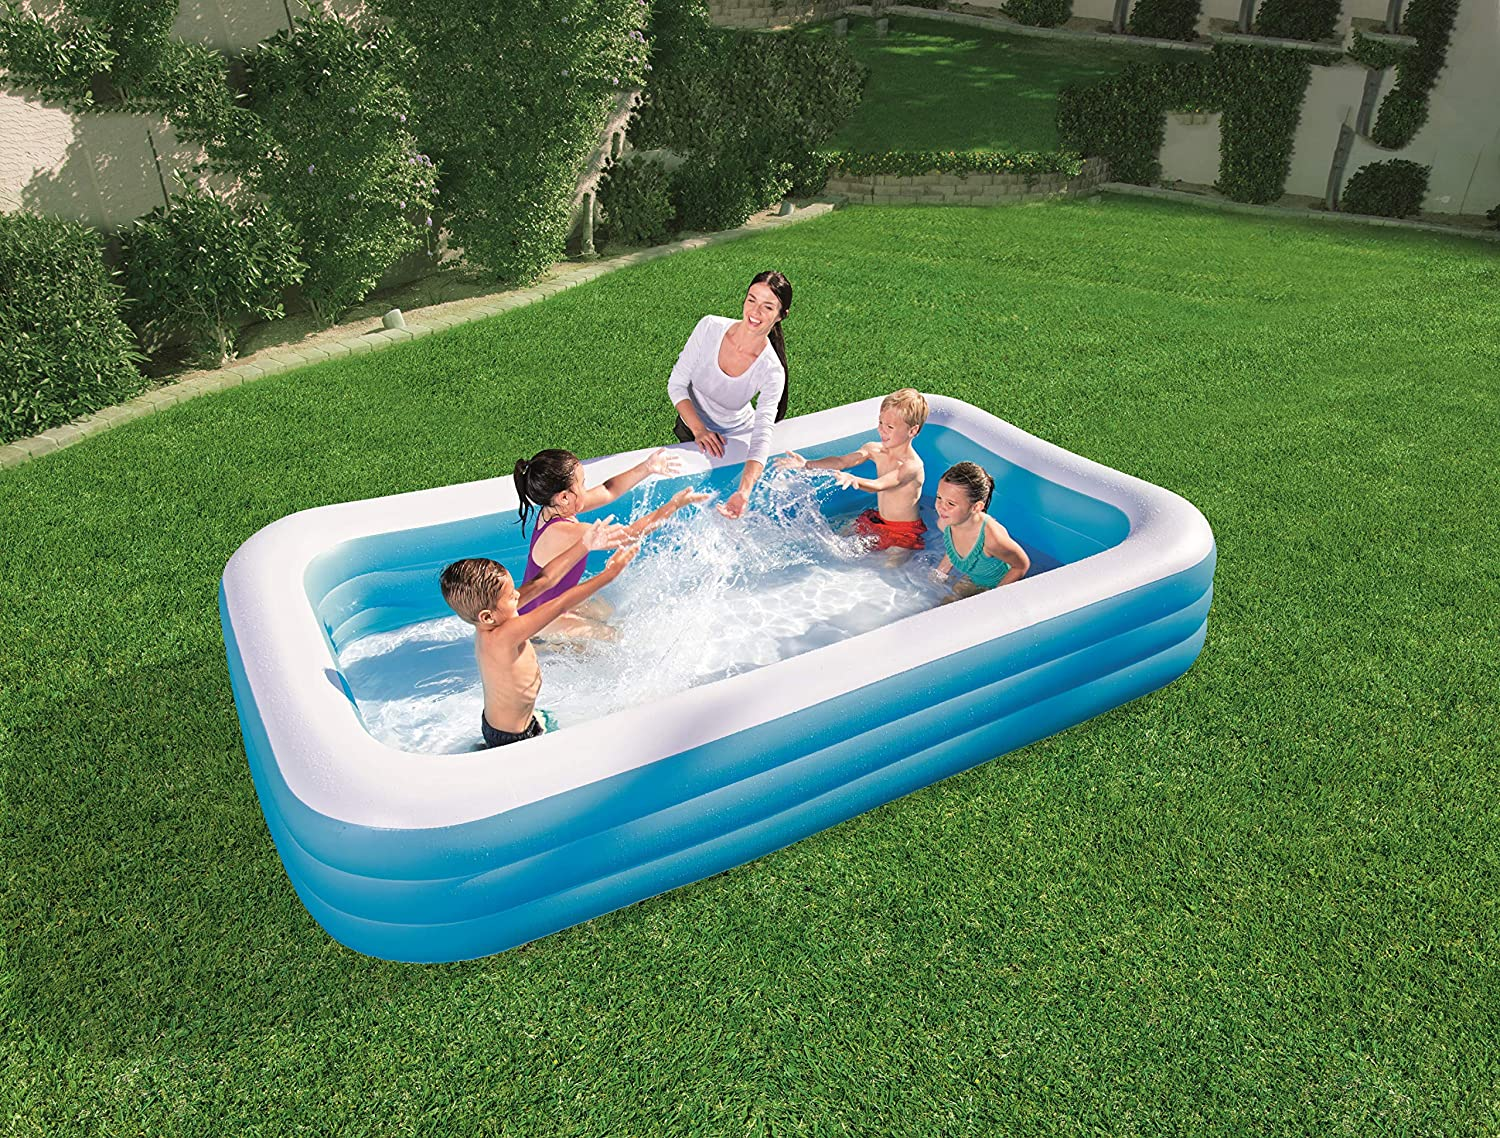 Bestway 54009 - Piscina Hinchable Infantil Rectangular 305x183x56 cm: Bestway 120 x 72 x 22-inches Deluxe Family Pool: Amazon.es: Deportes y aire libre